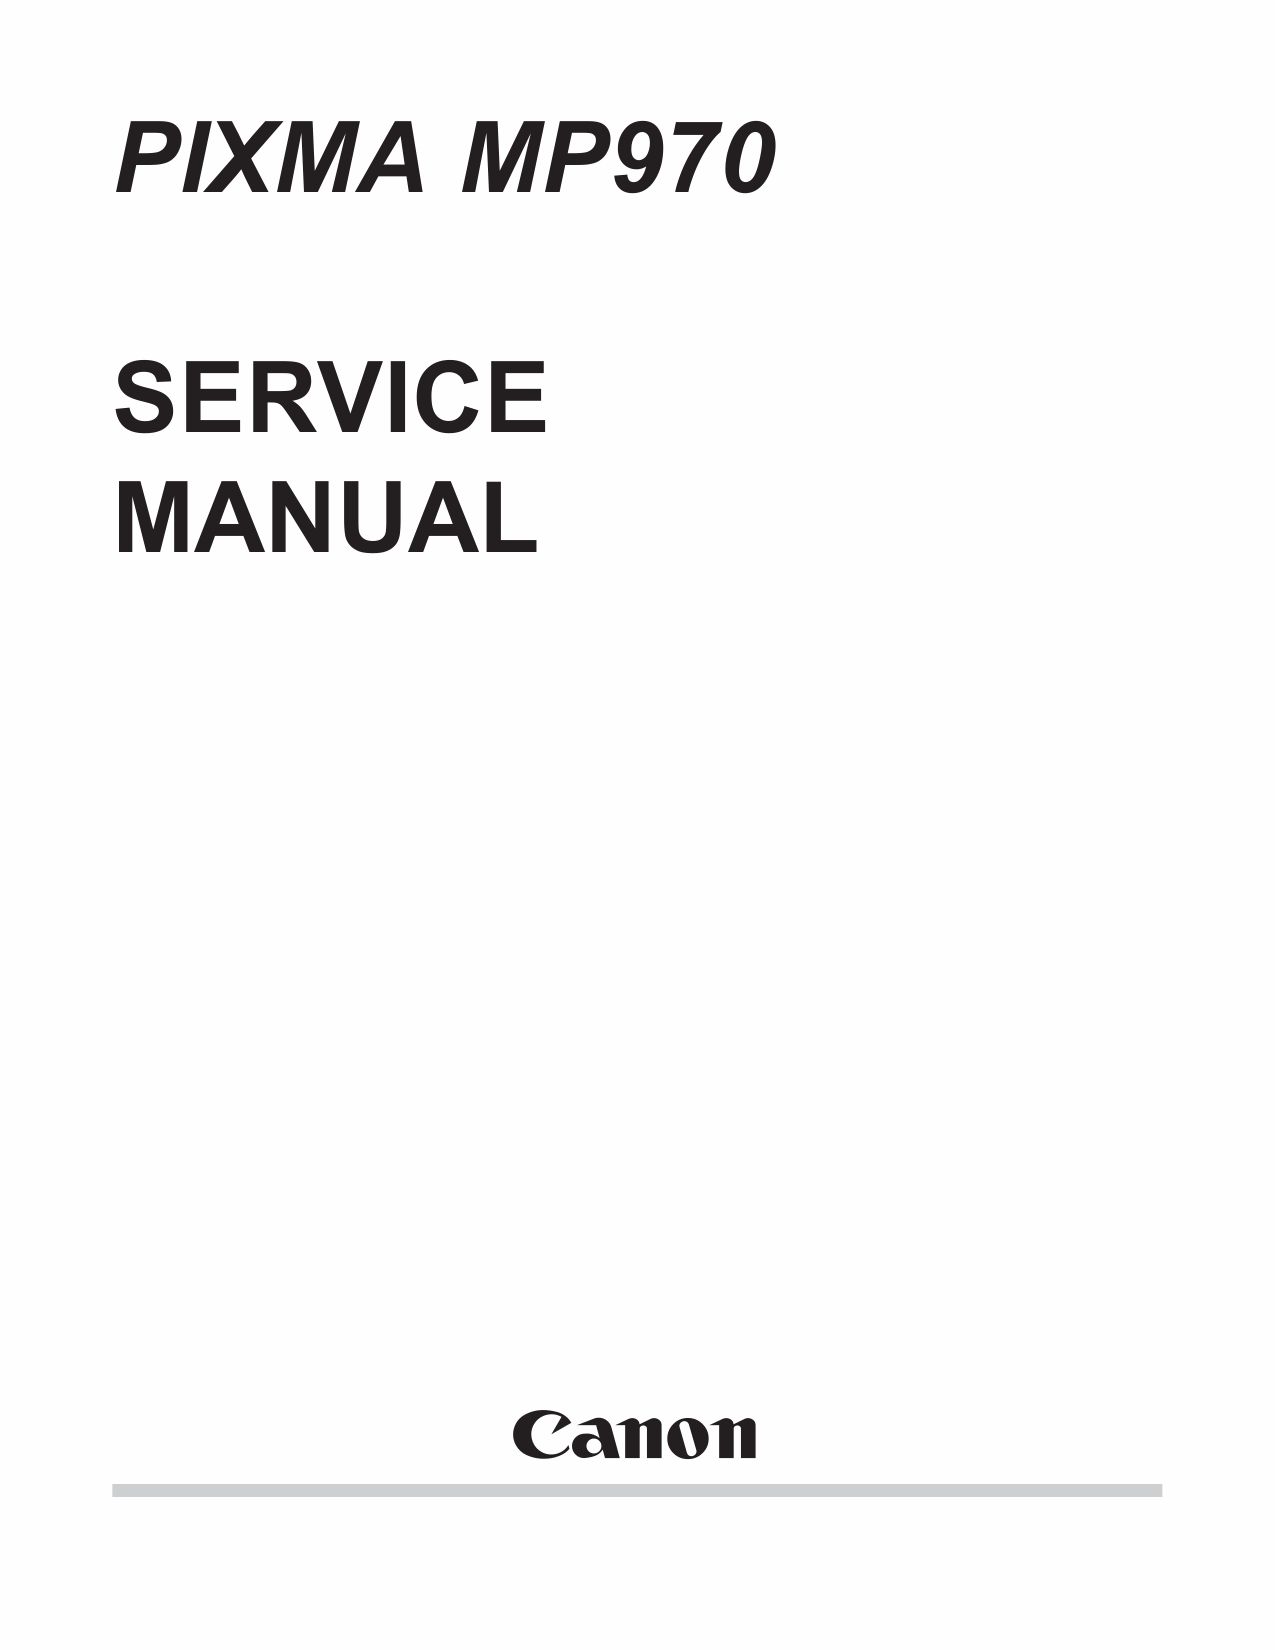 Canon PIXMA MP970 Parts and Service Manual-1